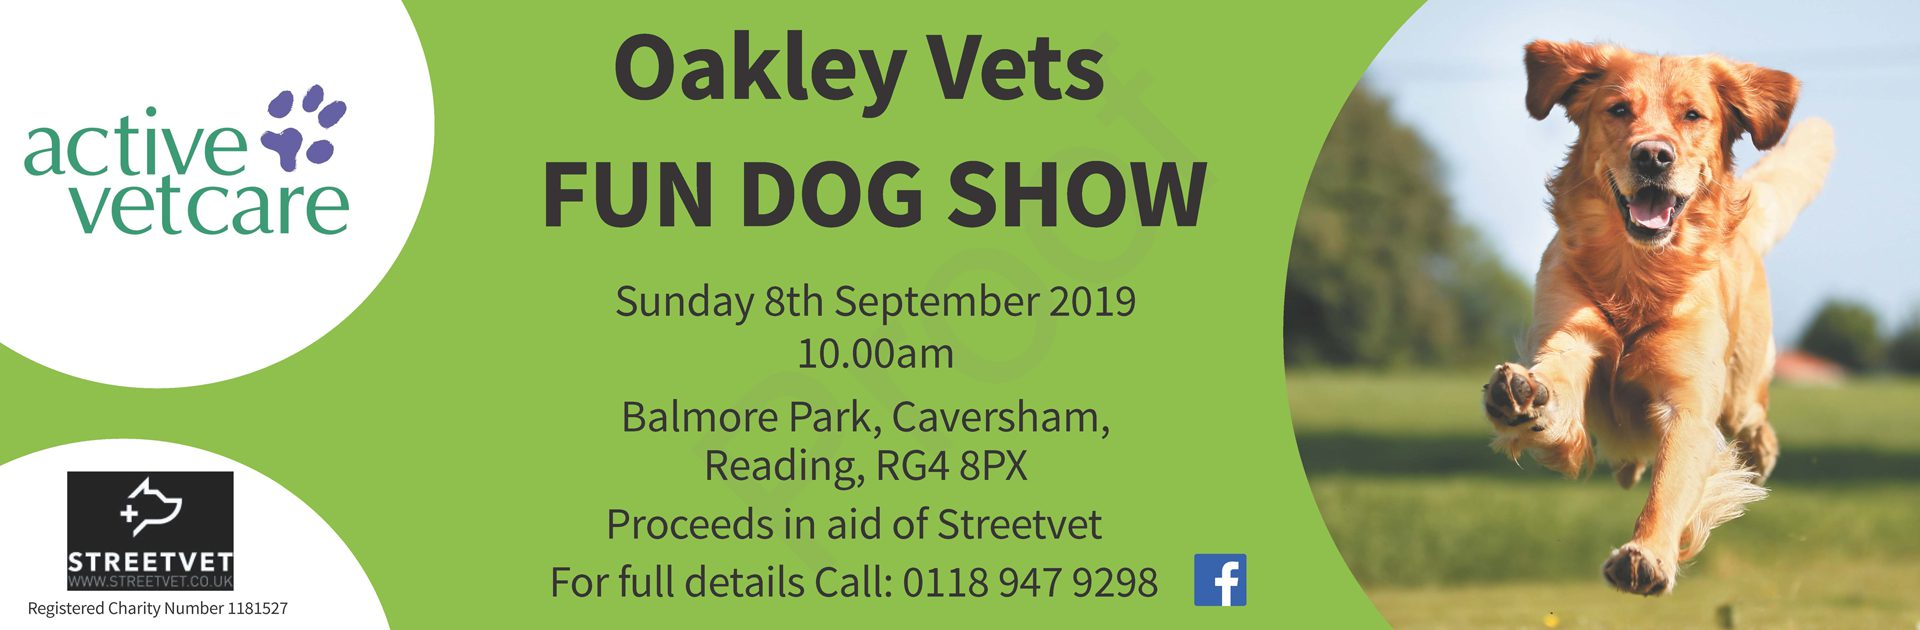 Banner with charity dog show details